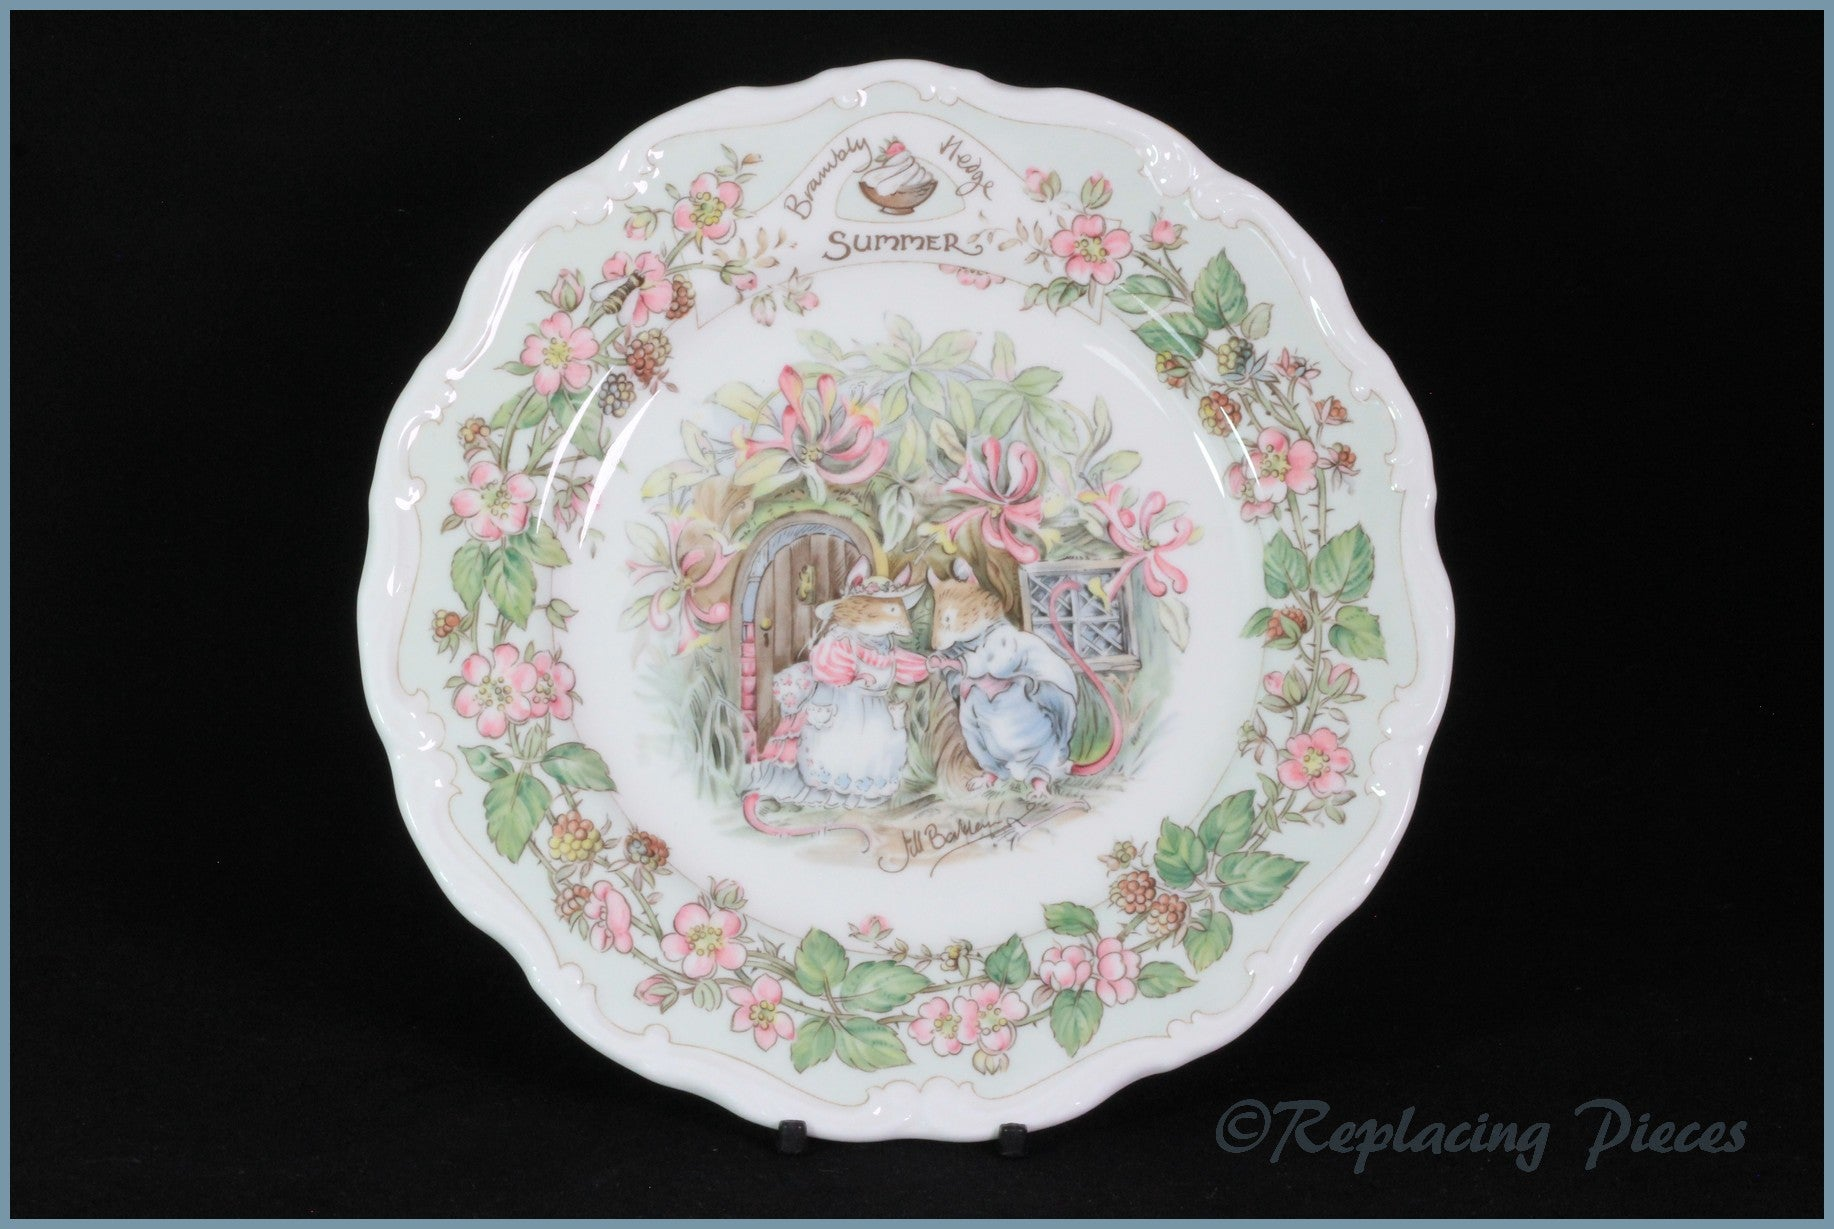 Royal Doulton - Brambly Hedge (Seasons) - Salad Plate (Summer)